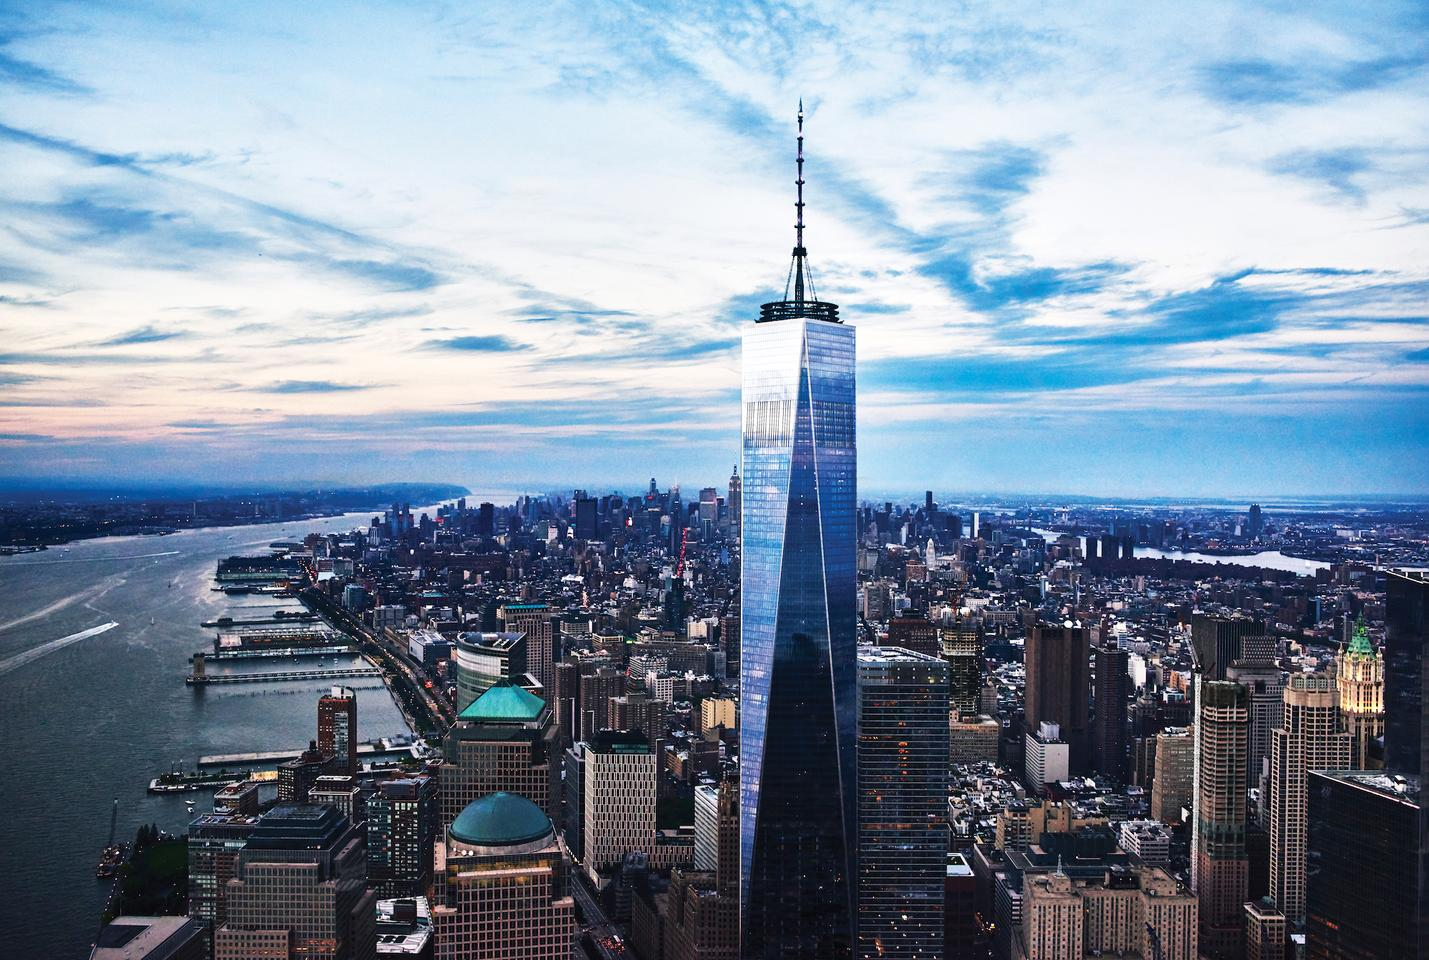 There's a little more to the One World Observatory than just a window at the top – as one would hope for $32 a ticket